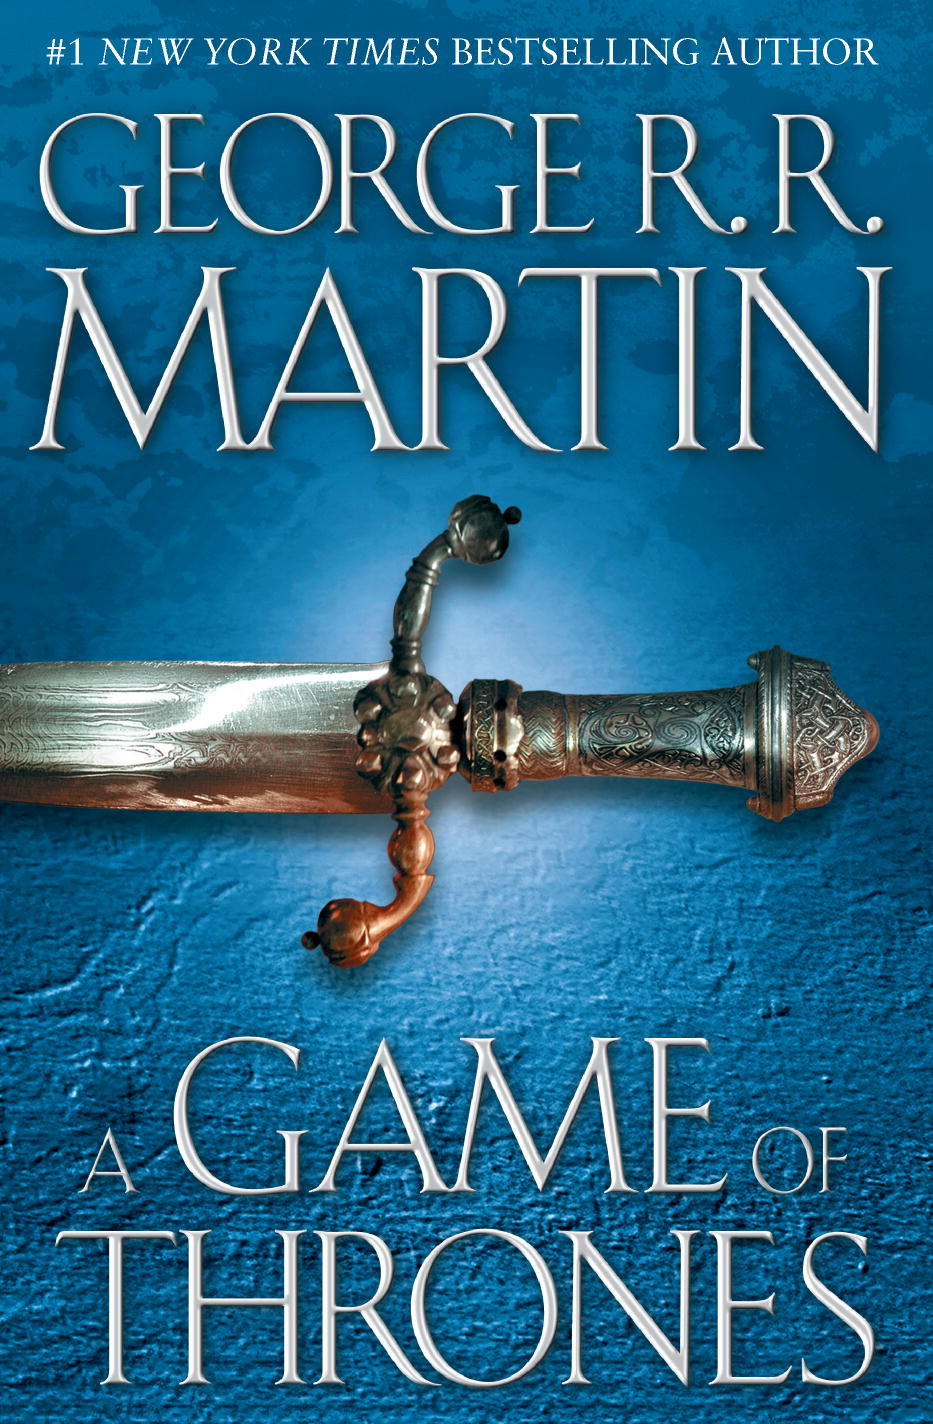 Cover art of A Game of Thrones by George R. R. Martin